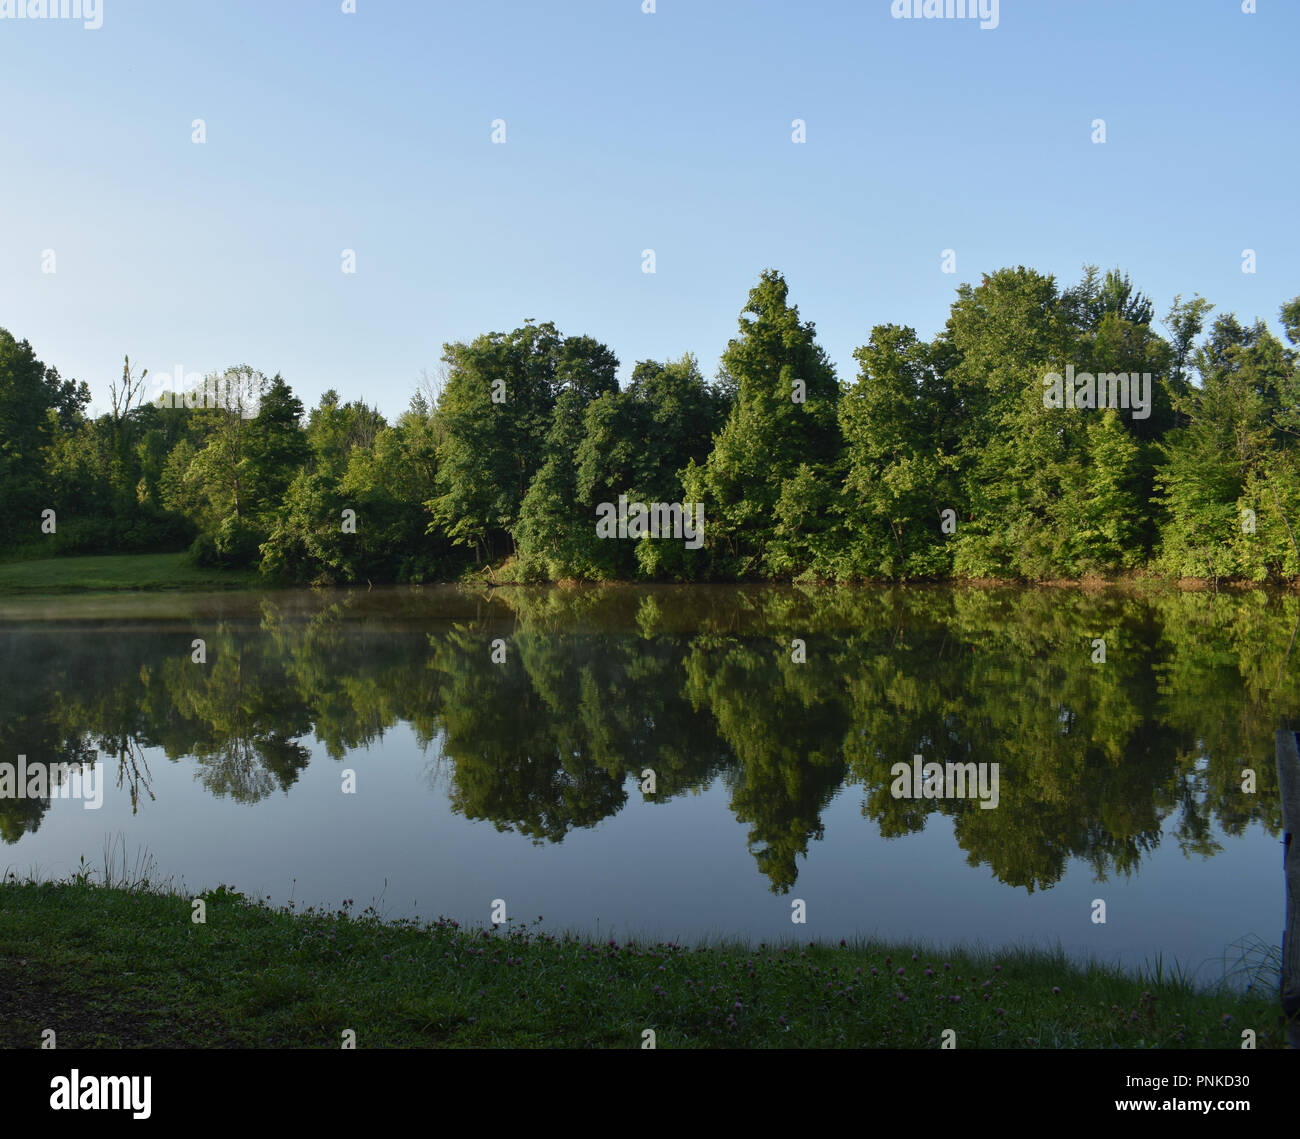 Mirror-like reflection of green tree-lined shore in a still lake on a sunny morning  with blue skies and touches of fog. Stock Photo